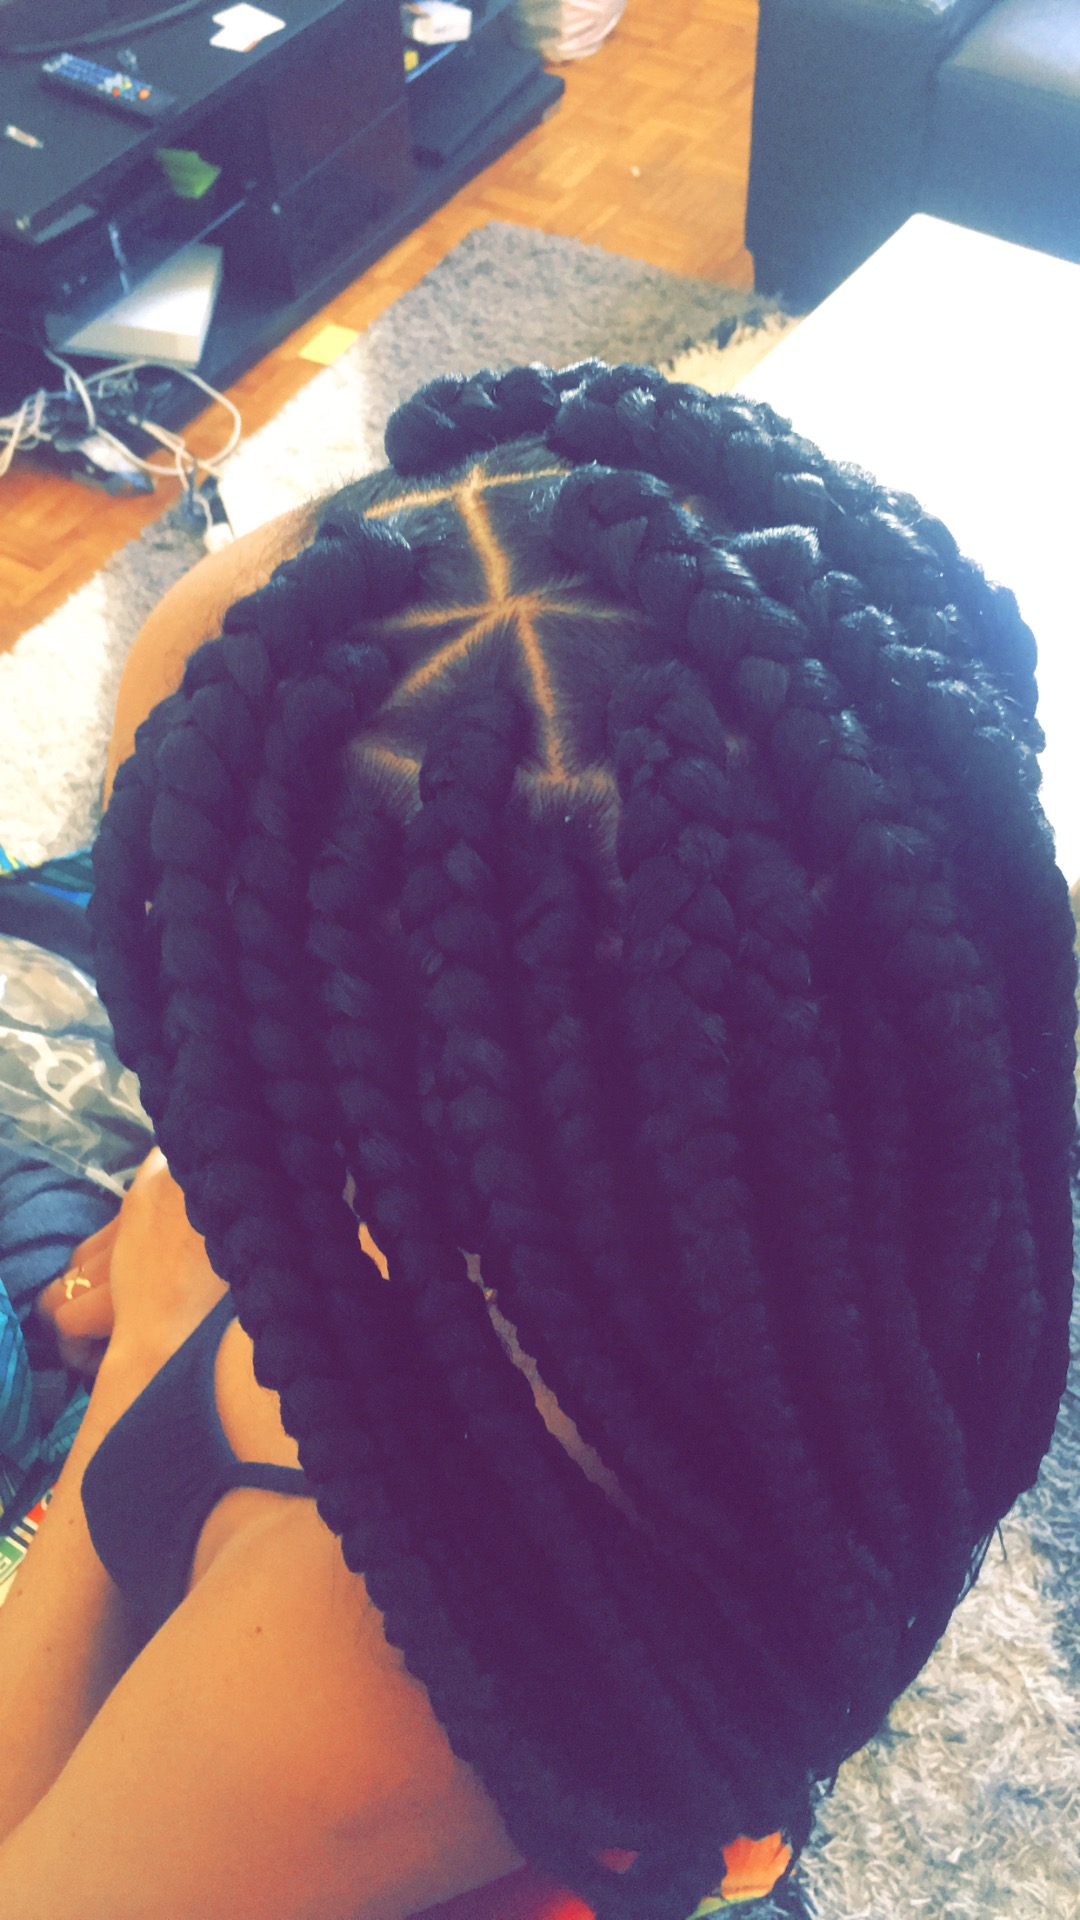 salon de coiffure afro tresse tresses box braids crochet braids vanilles tissages paris 75 77 78 91 92 93 94 95 SJZFUXRF